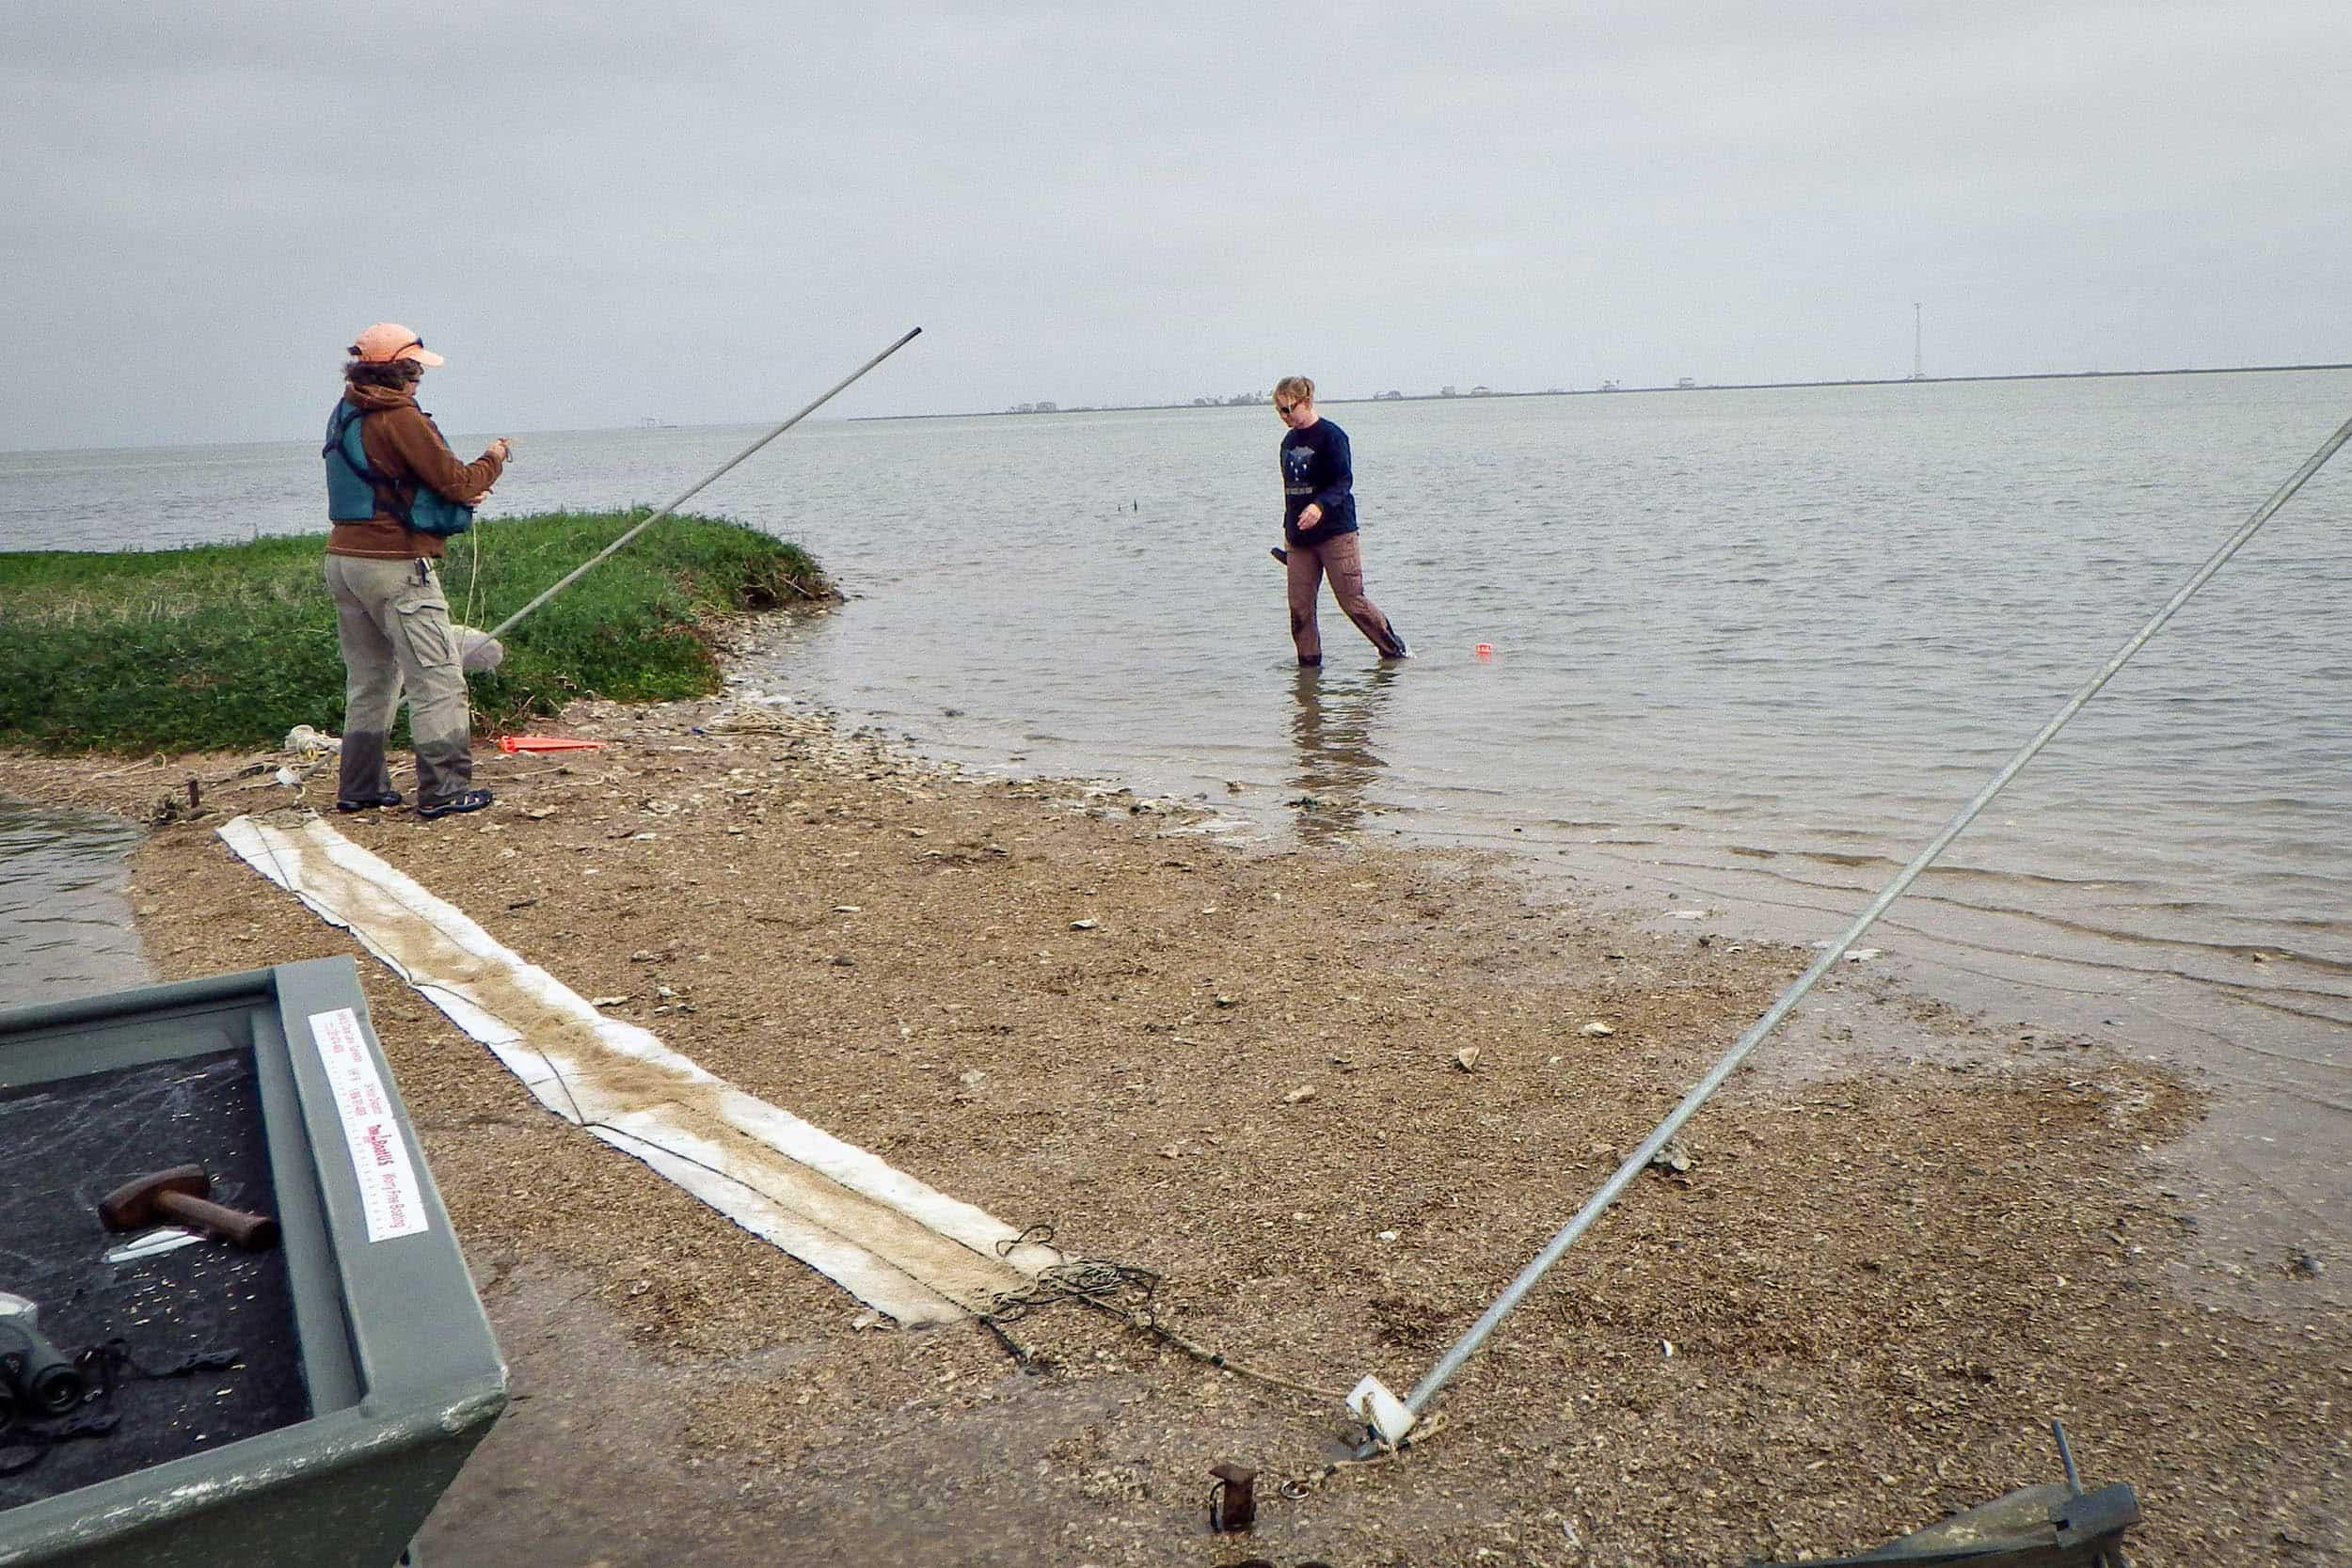 Susan Heath, GCBO avian conservation biologist, and Amanda Anderson, EIH research assistant, set up a whoosh net